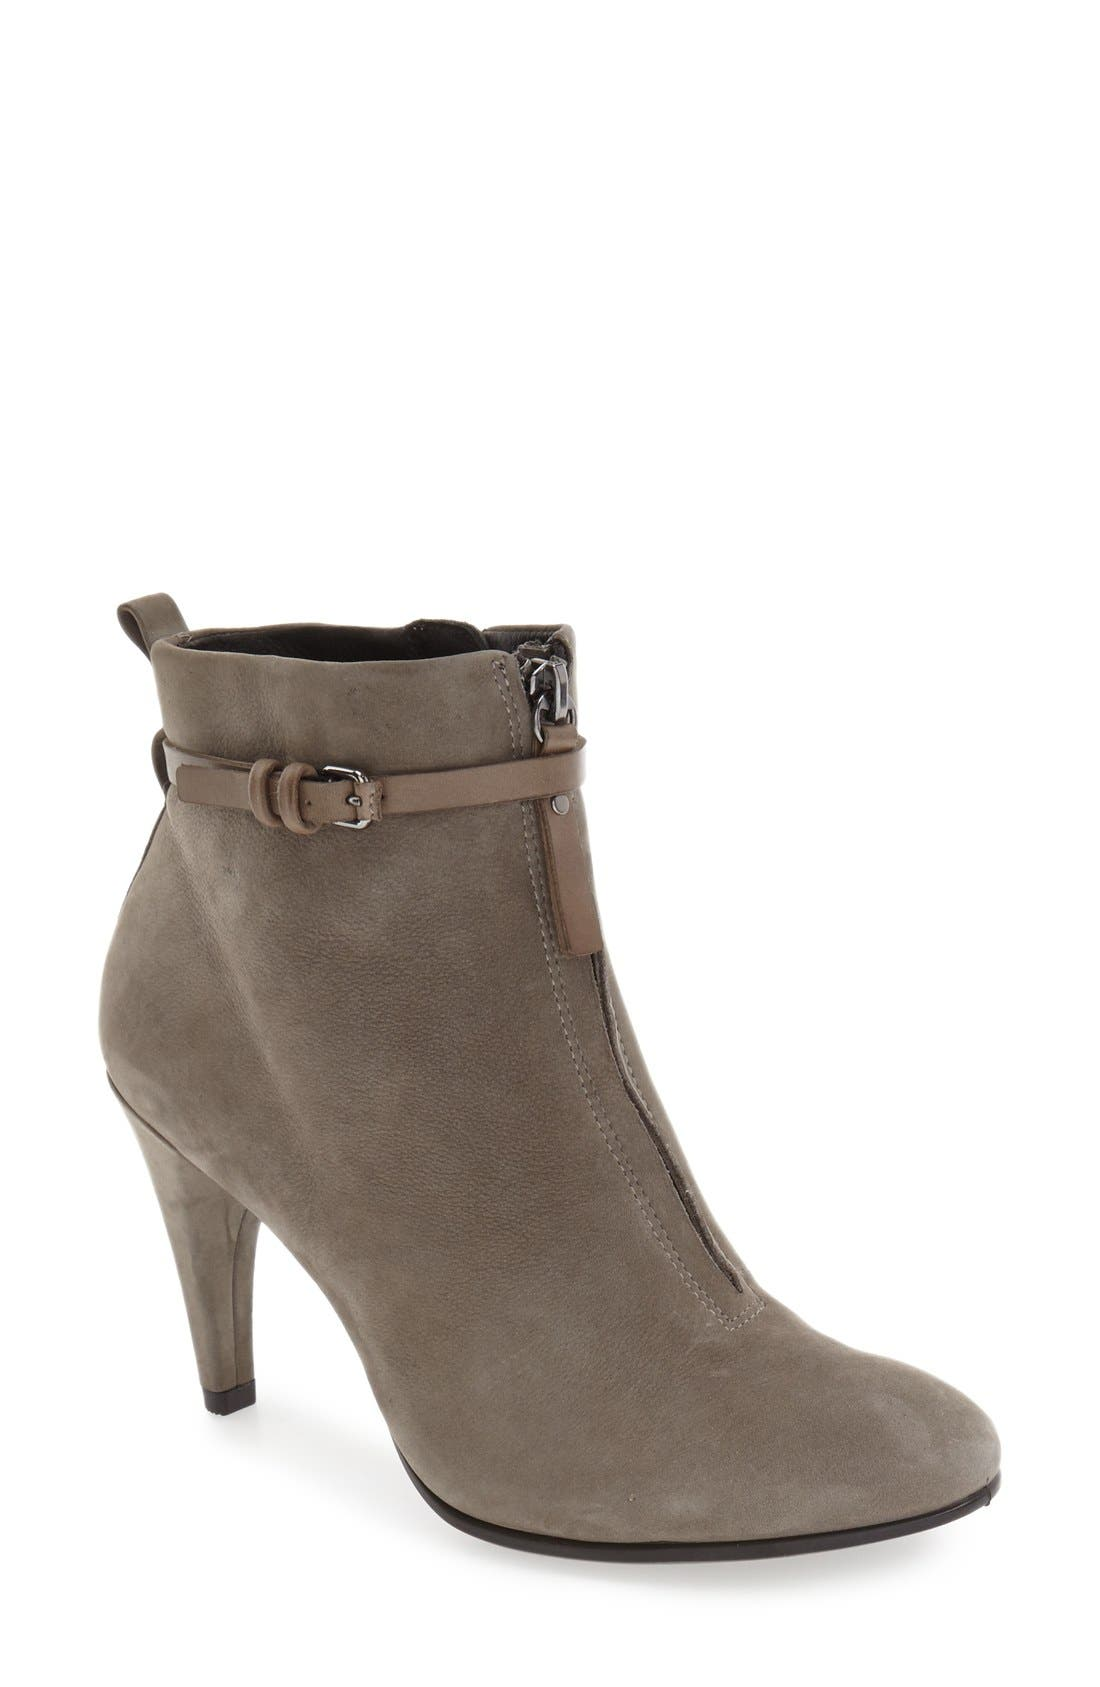 'Shape 75' Bootie,                         Main,                         color, Warm Grey Nubuck Leather